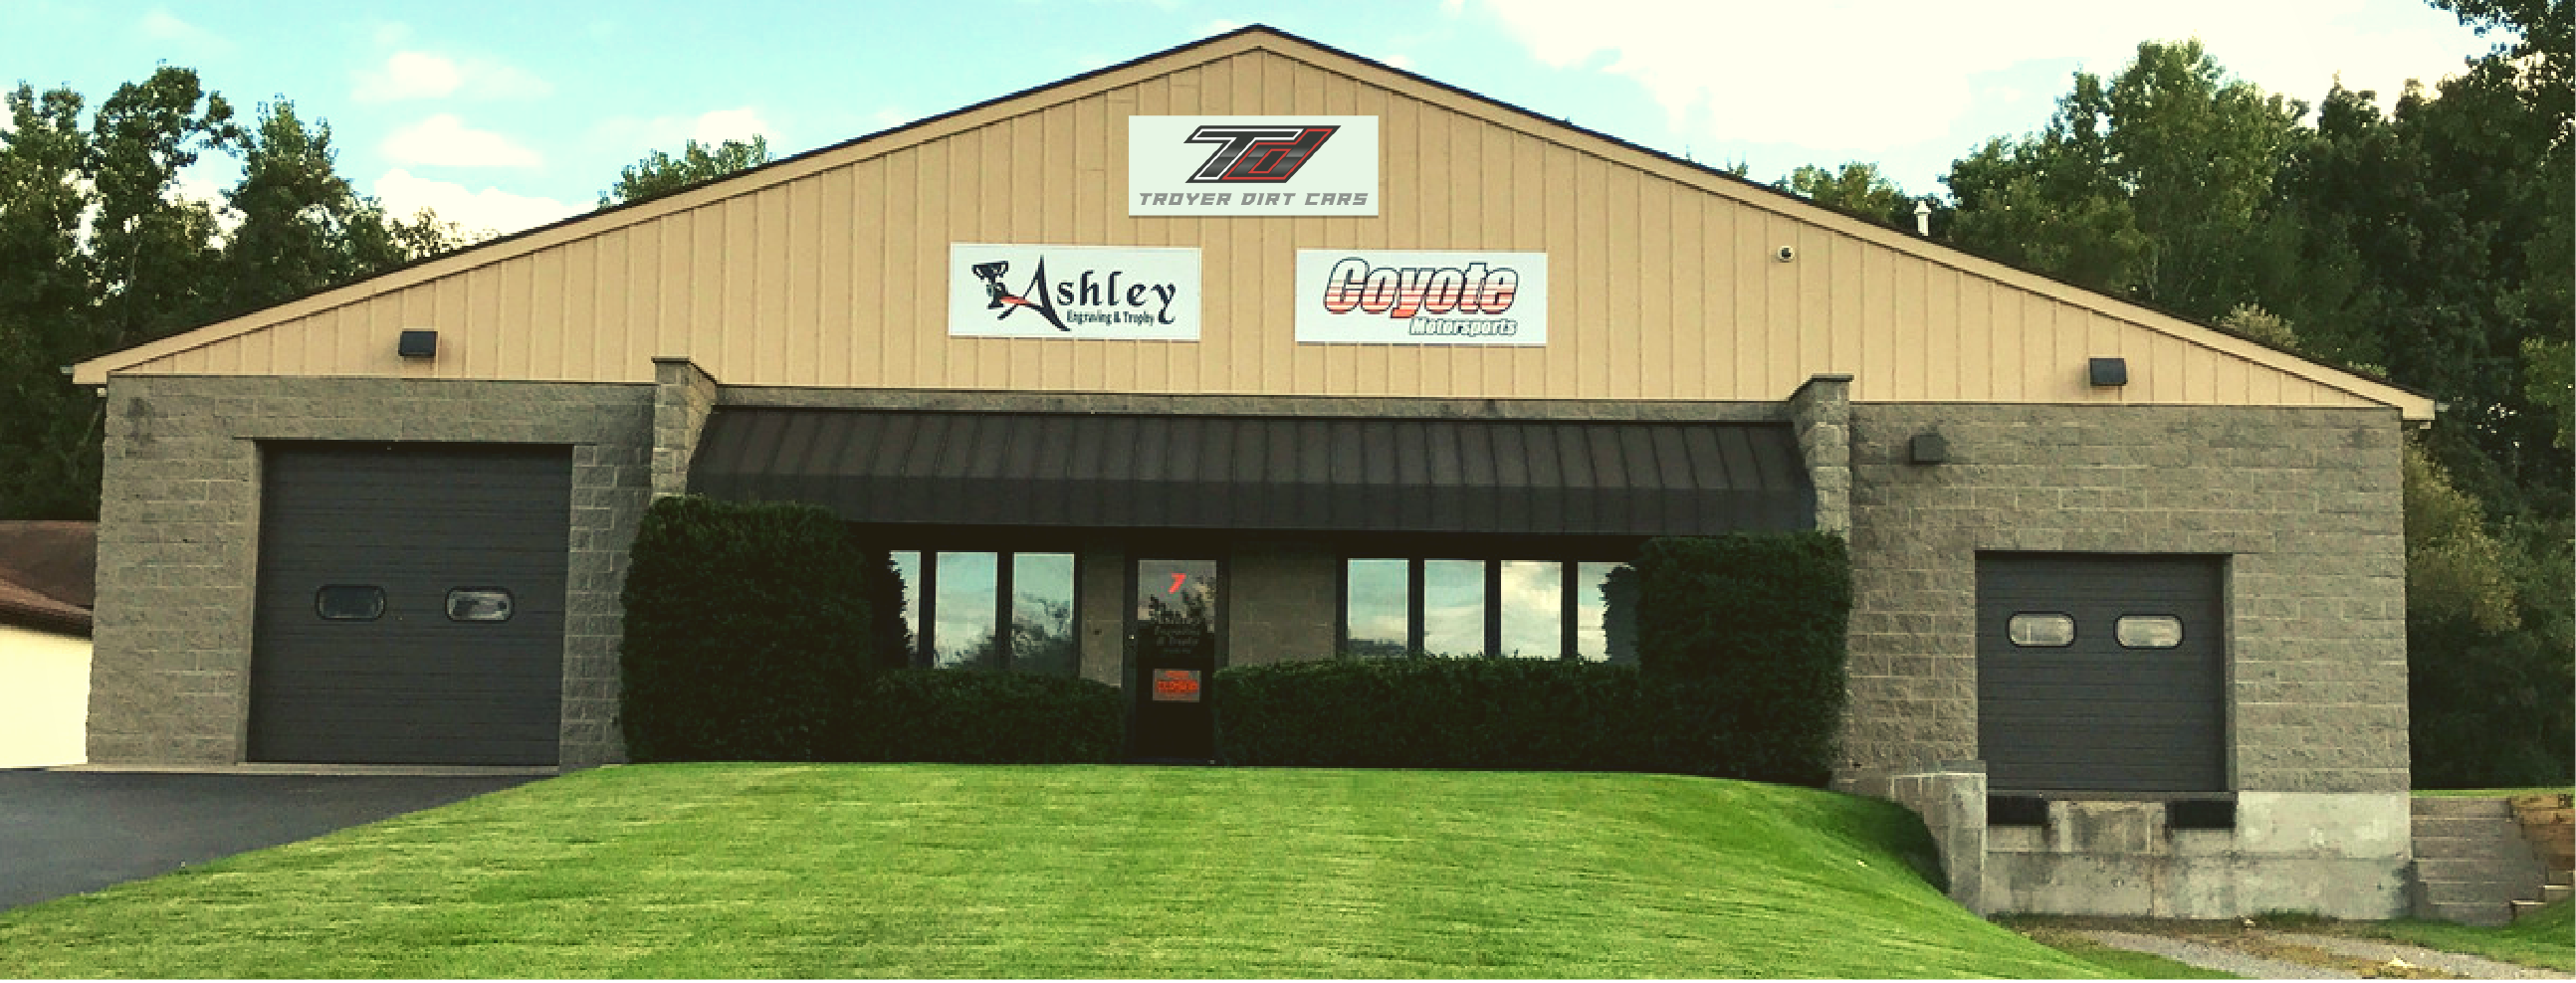 Coyote Motorsports and Troyer Dirt Cars facility in Spencerport, N.Y.